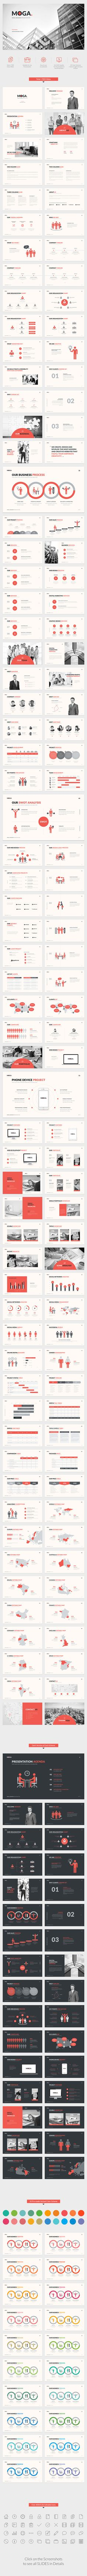 MOGA. - Small Business Presentation PowerPoint Template